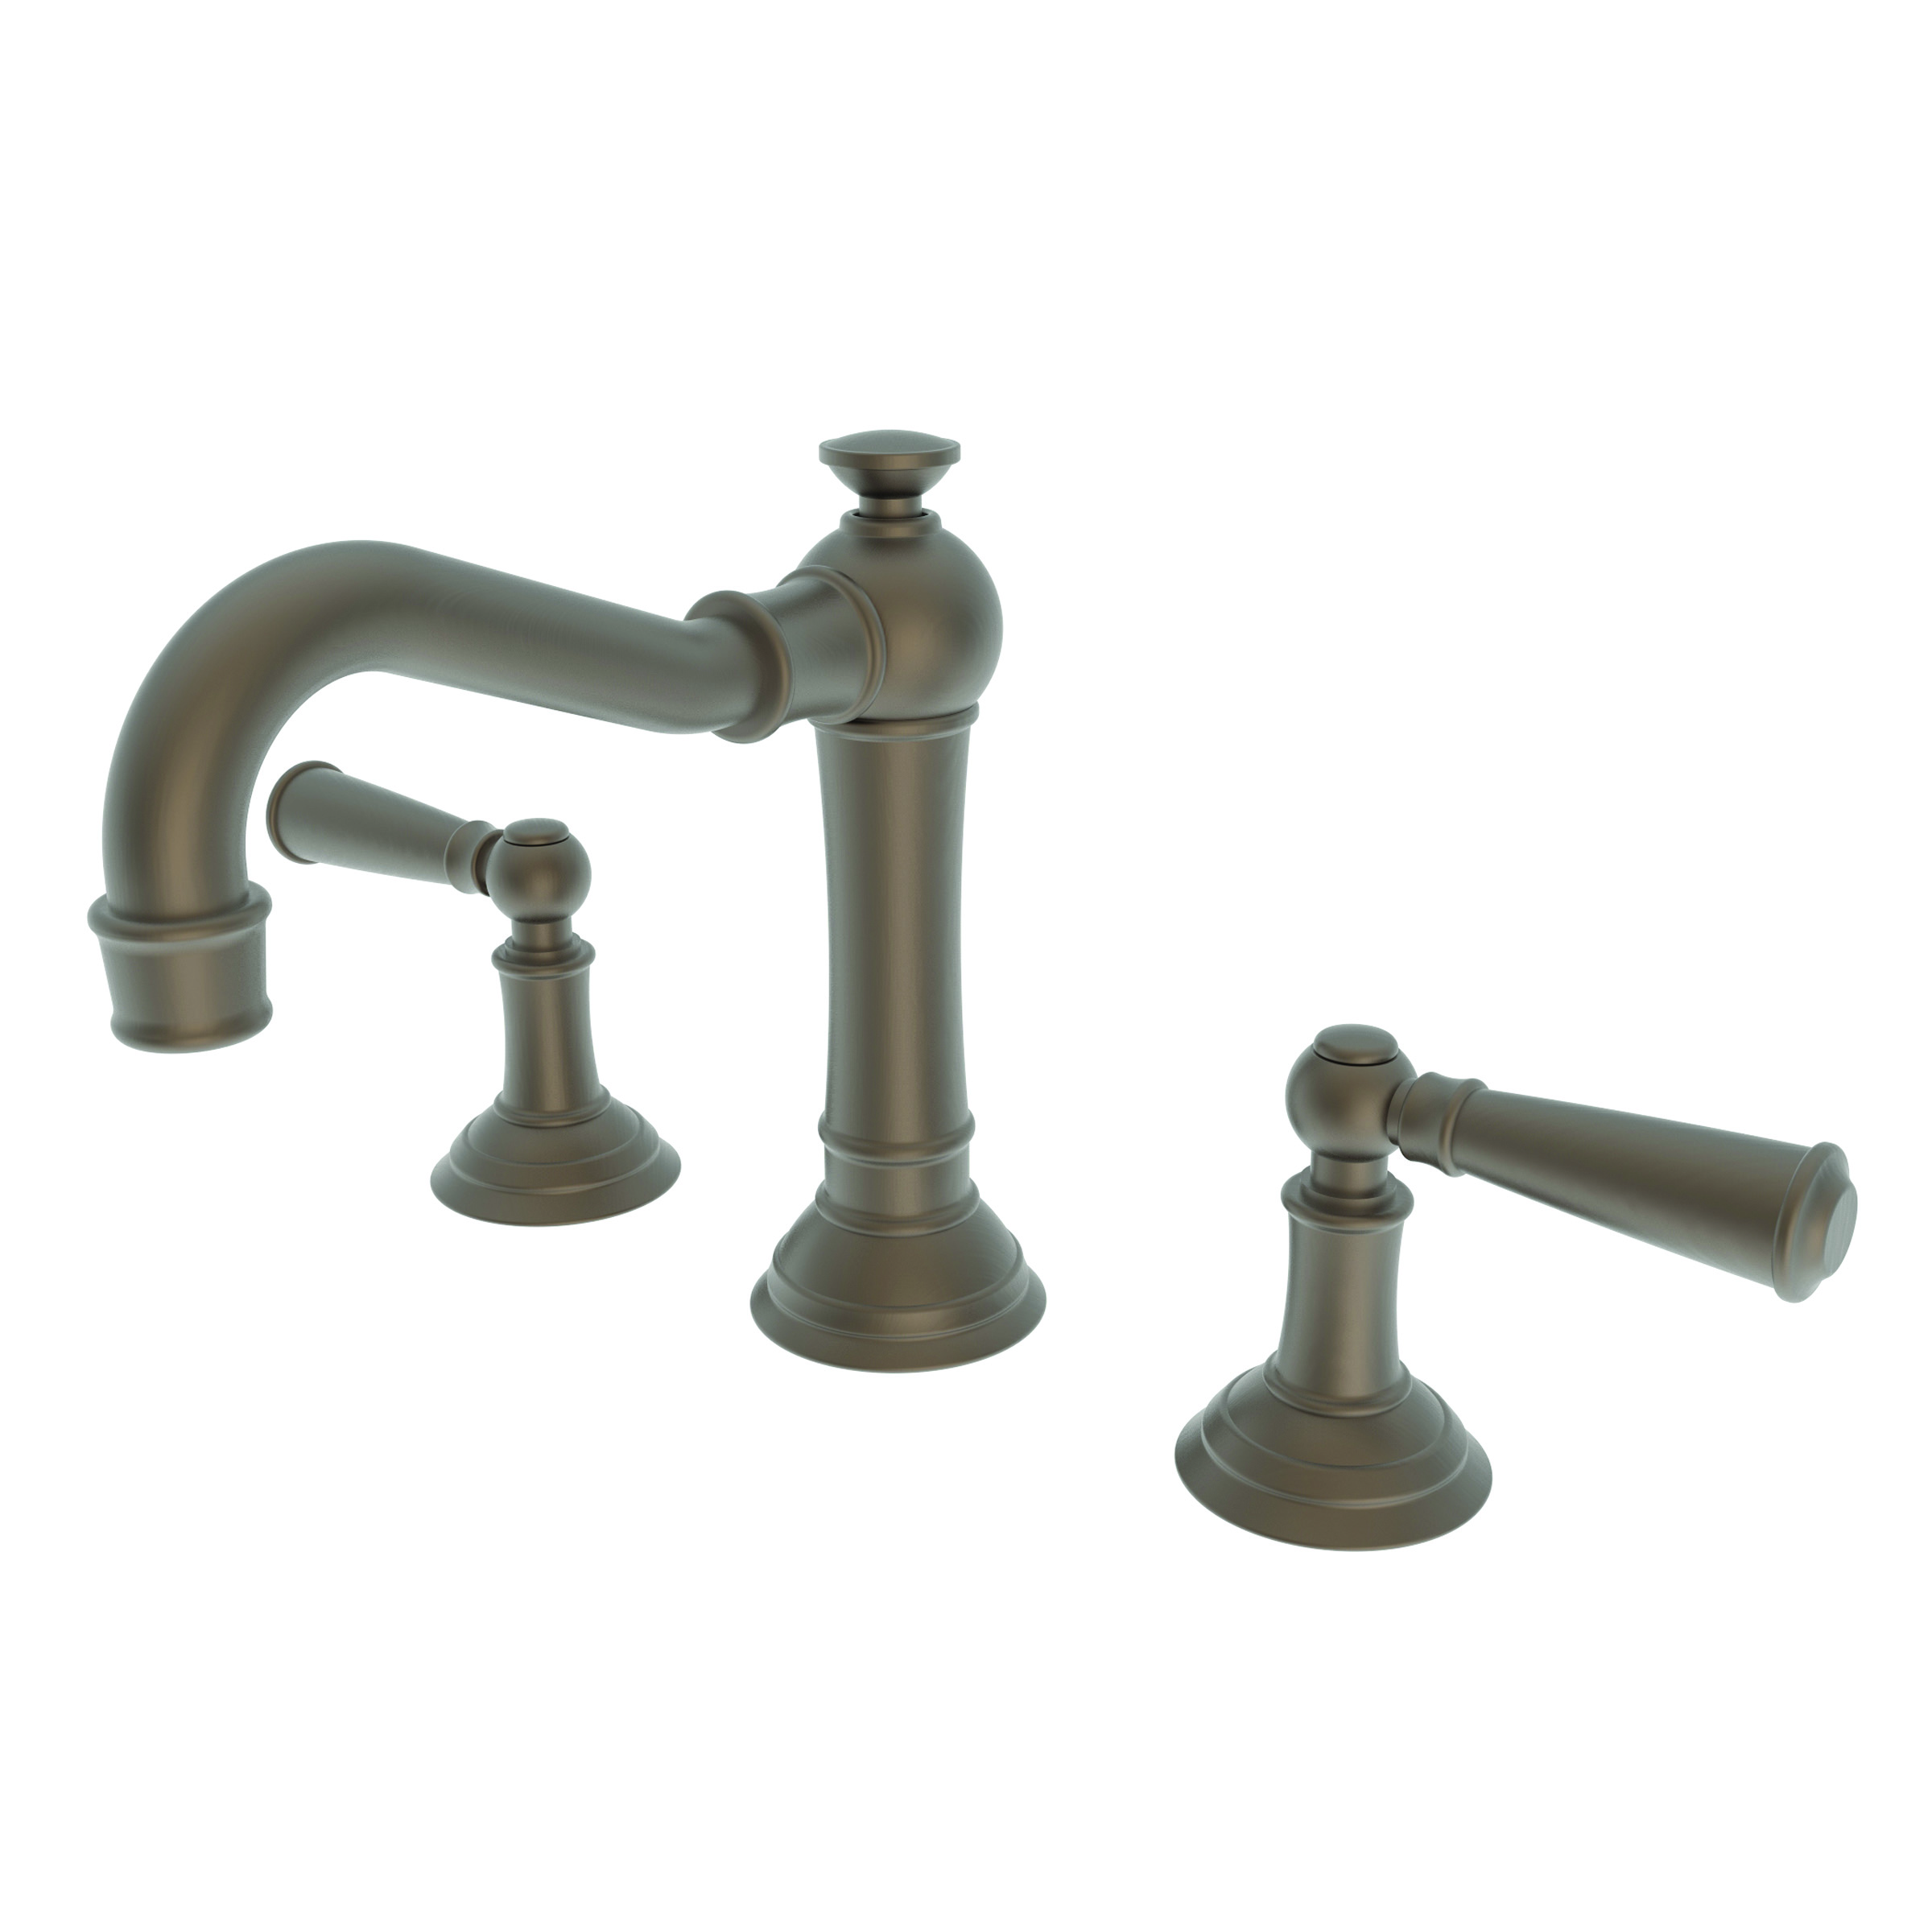 Newport brass 2470 widespread lavatory faucet country base lever handles newport brass faucets Newport brass bathroom faucets